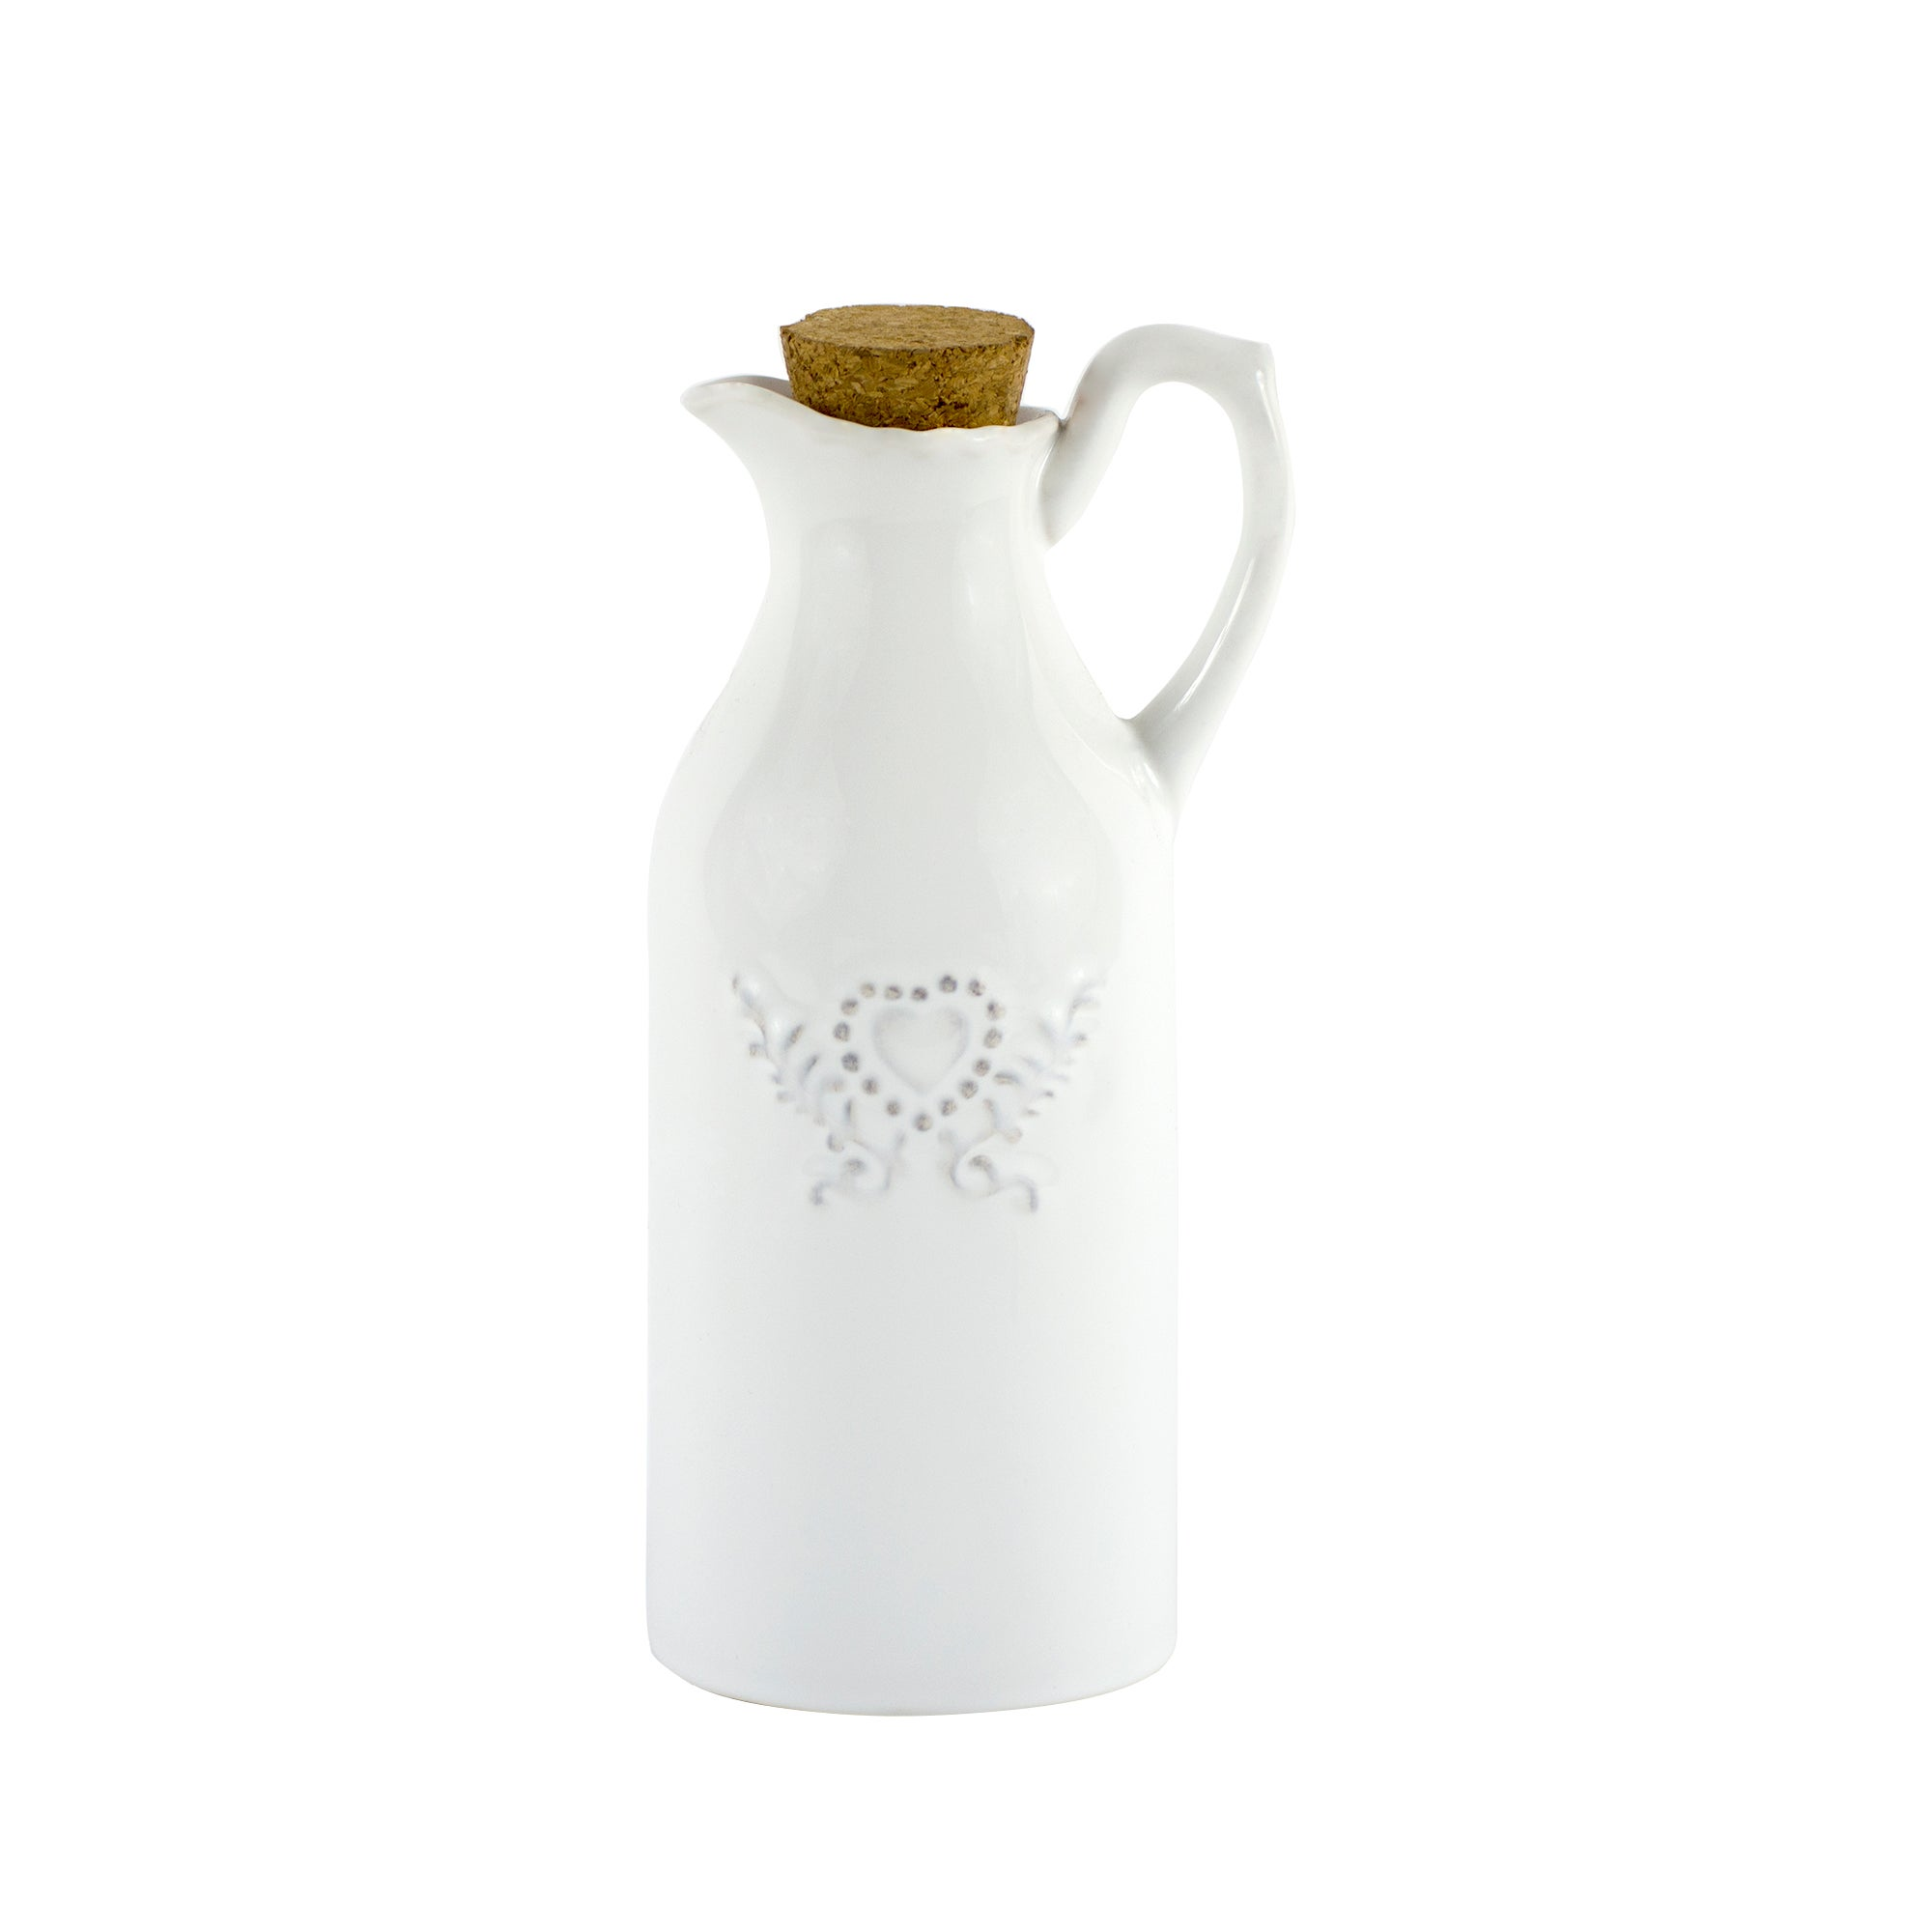 Maison Chic Collection Oil and Vinegar Bottle